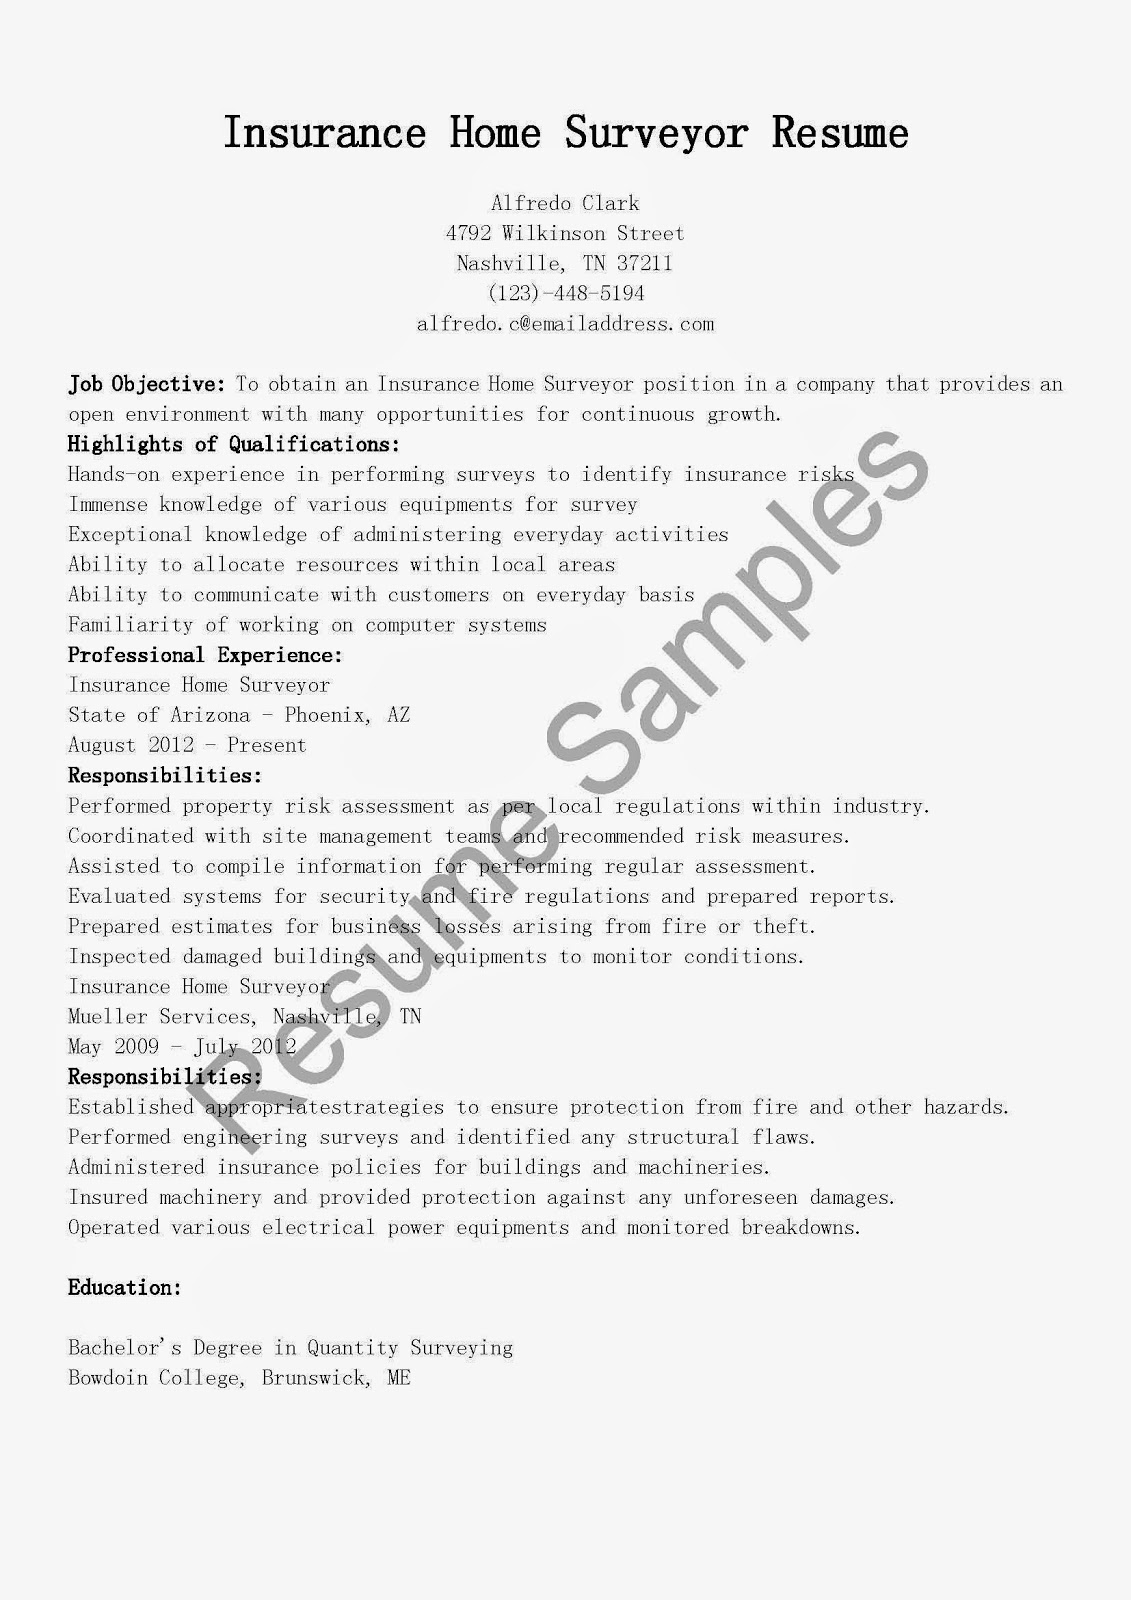 Best Custom Essay Writer Service Online At Cheap Rates personal ...